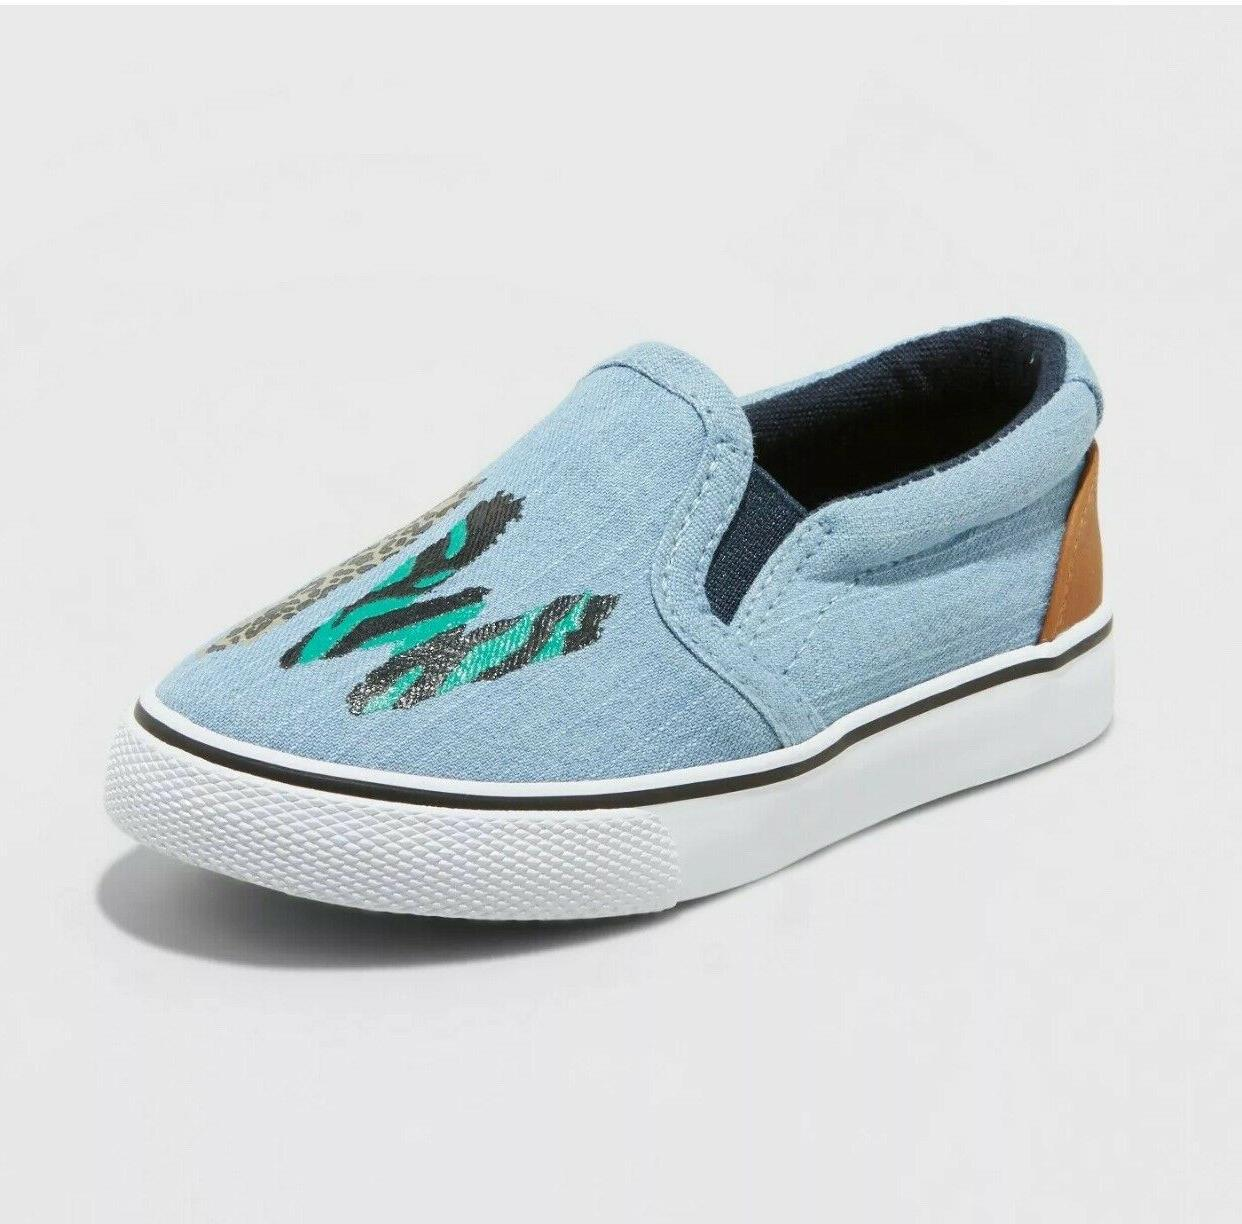 Cat & Boys Shoes Slip On Size 10 Chambray